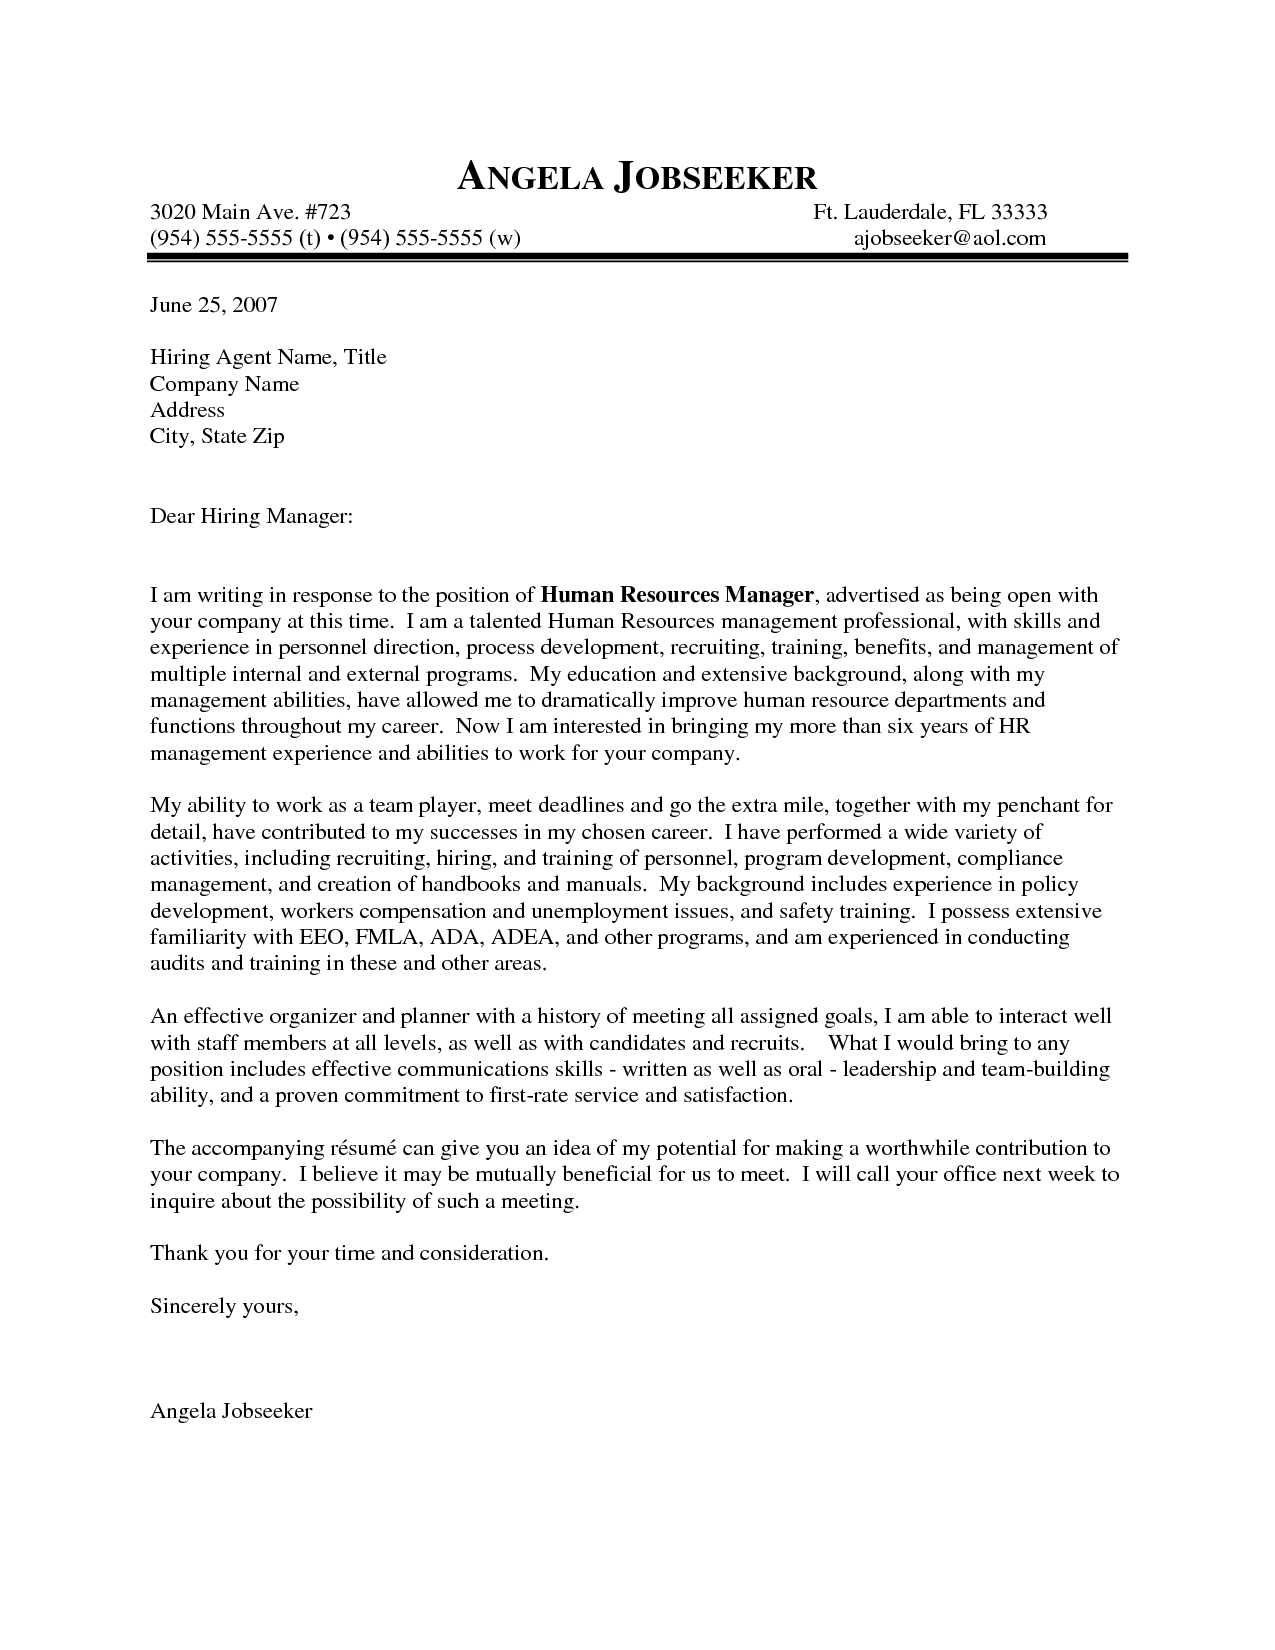 Outstanding cover letter examples hr manager cover letter example how to write a good cover letter for employment best sample cover letters need even more attention grabbing cover spiritdancerdesigns Image collections